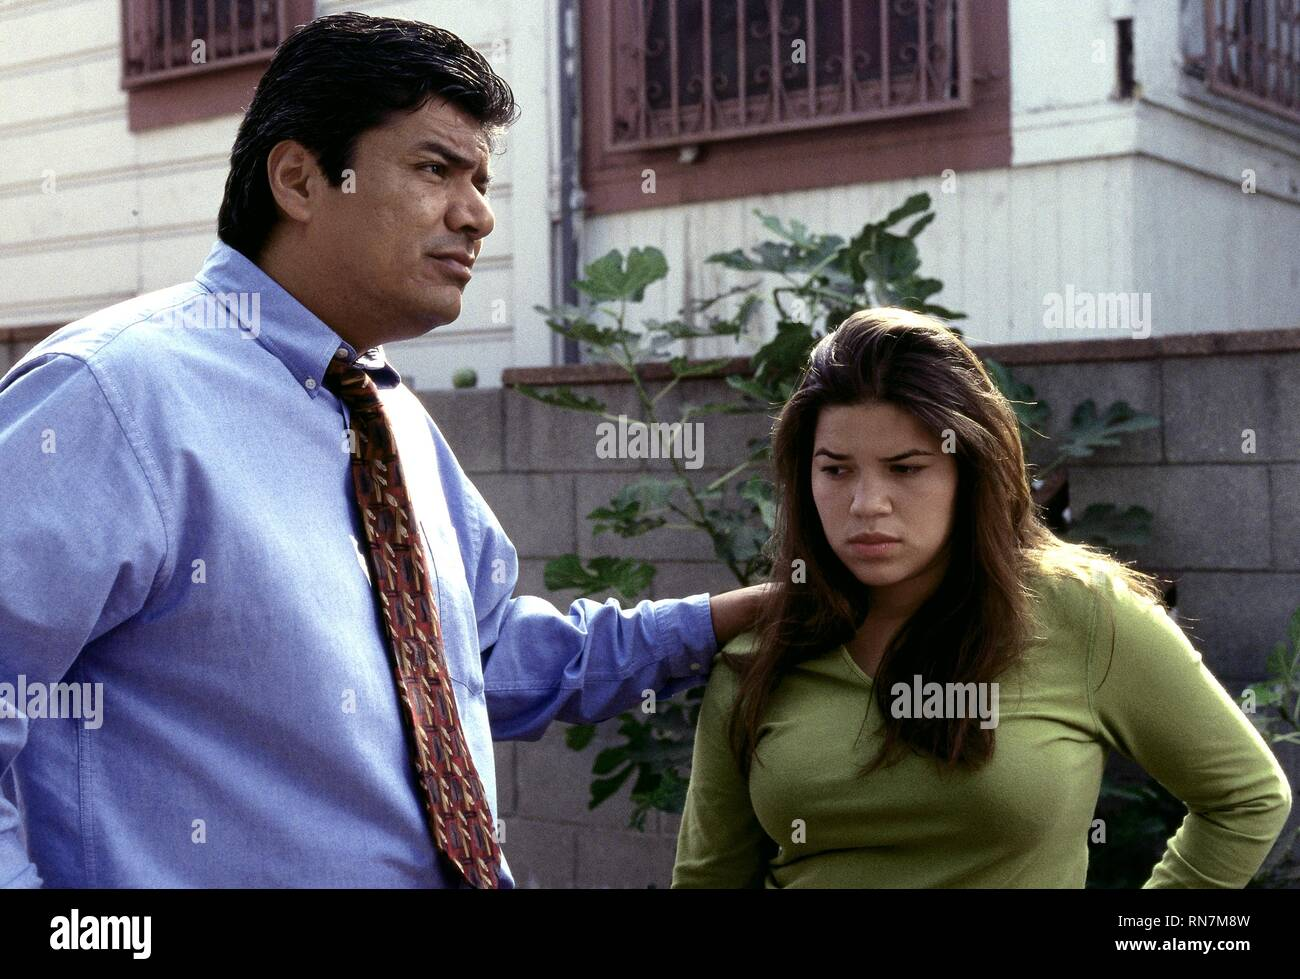 GEORGE LOPEZ,AMERICA FERRERA, REAL WOMEN HAVE CURVES, 2002 - Stock Image